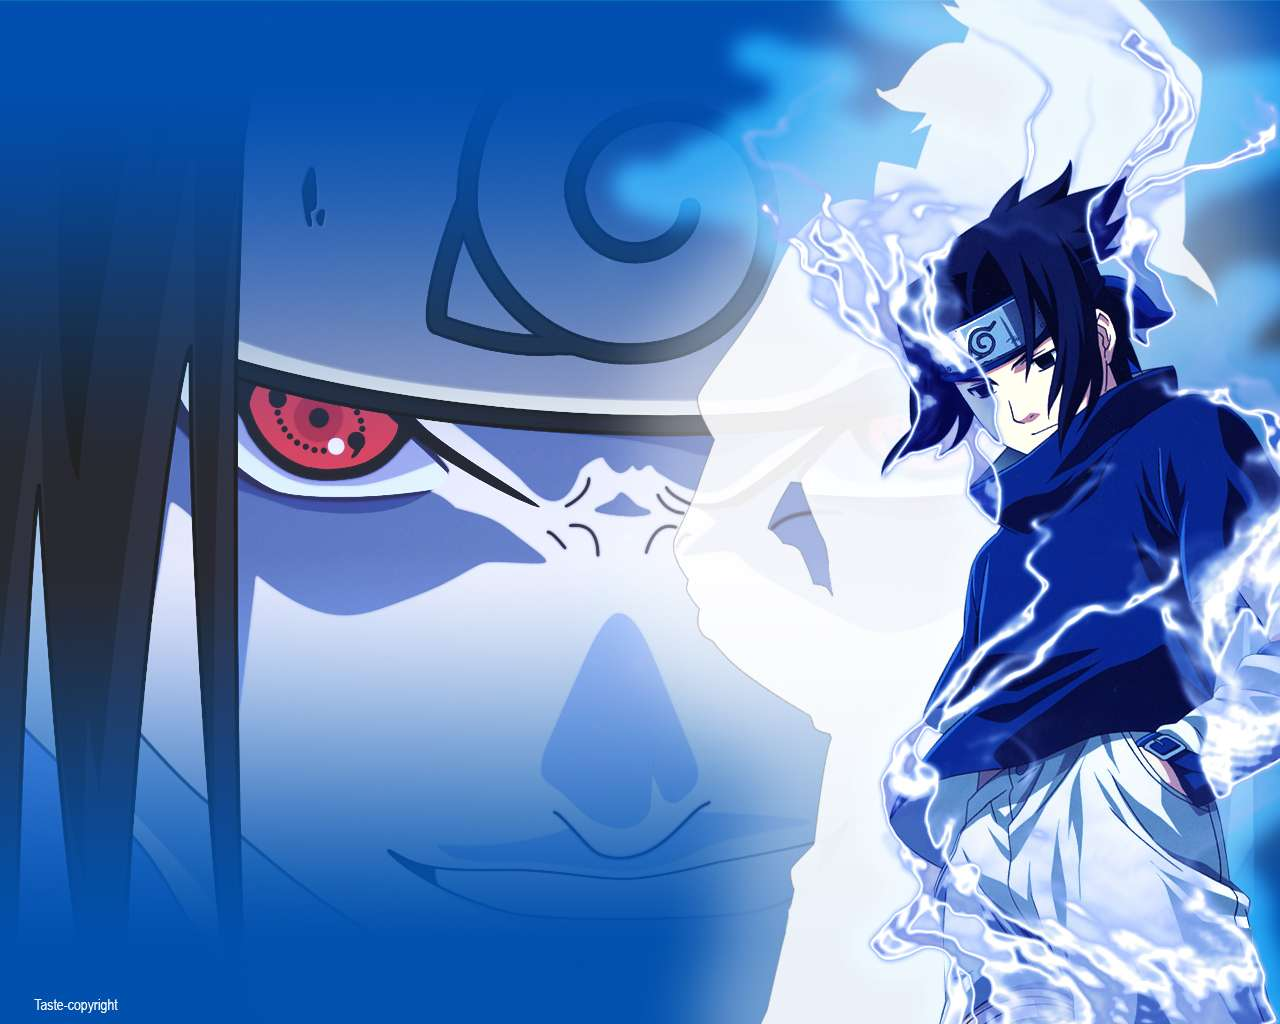 wallpapers de sasuke uchiha hd - Taringa!